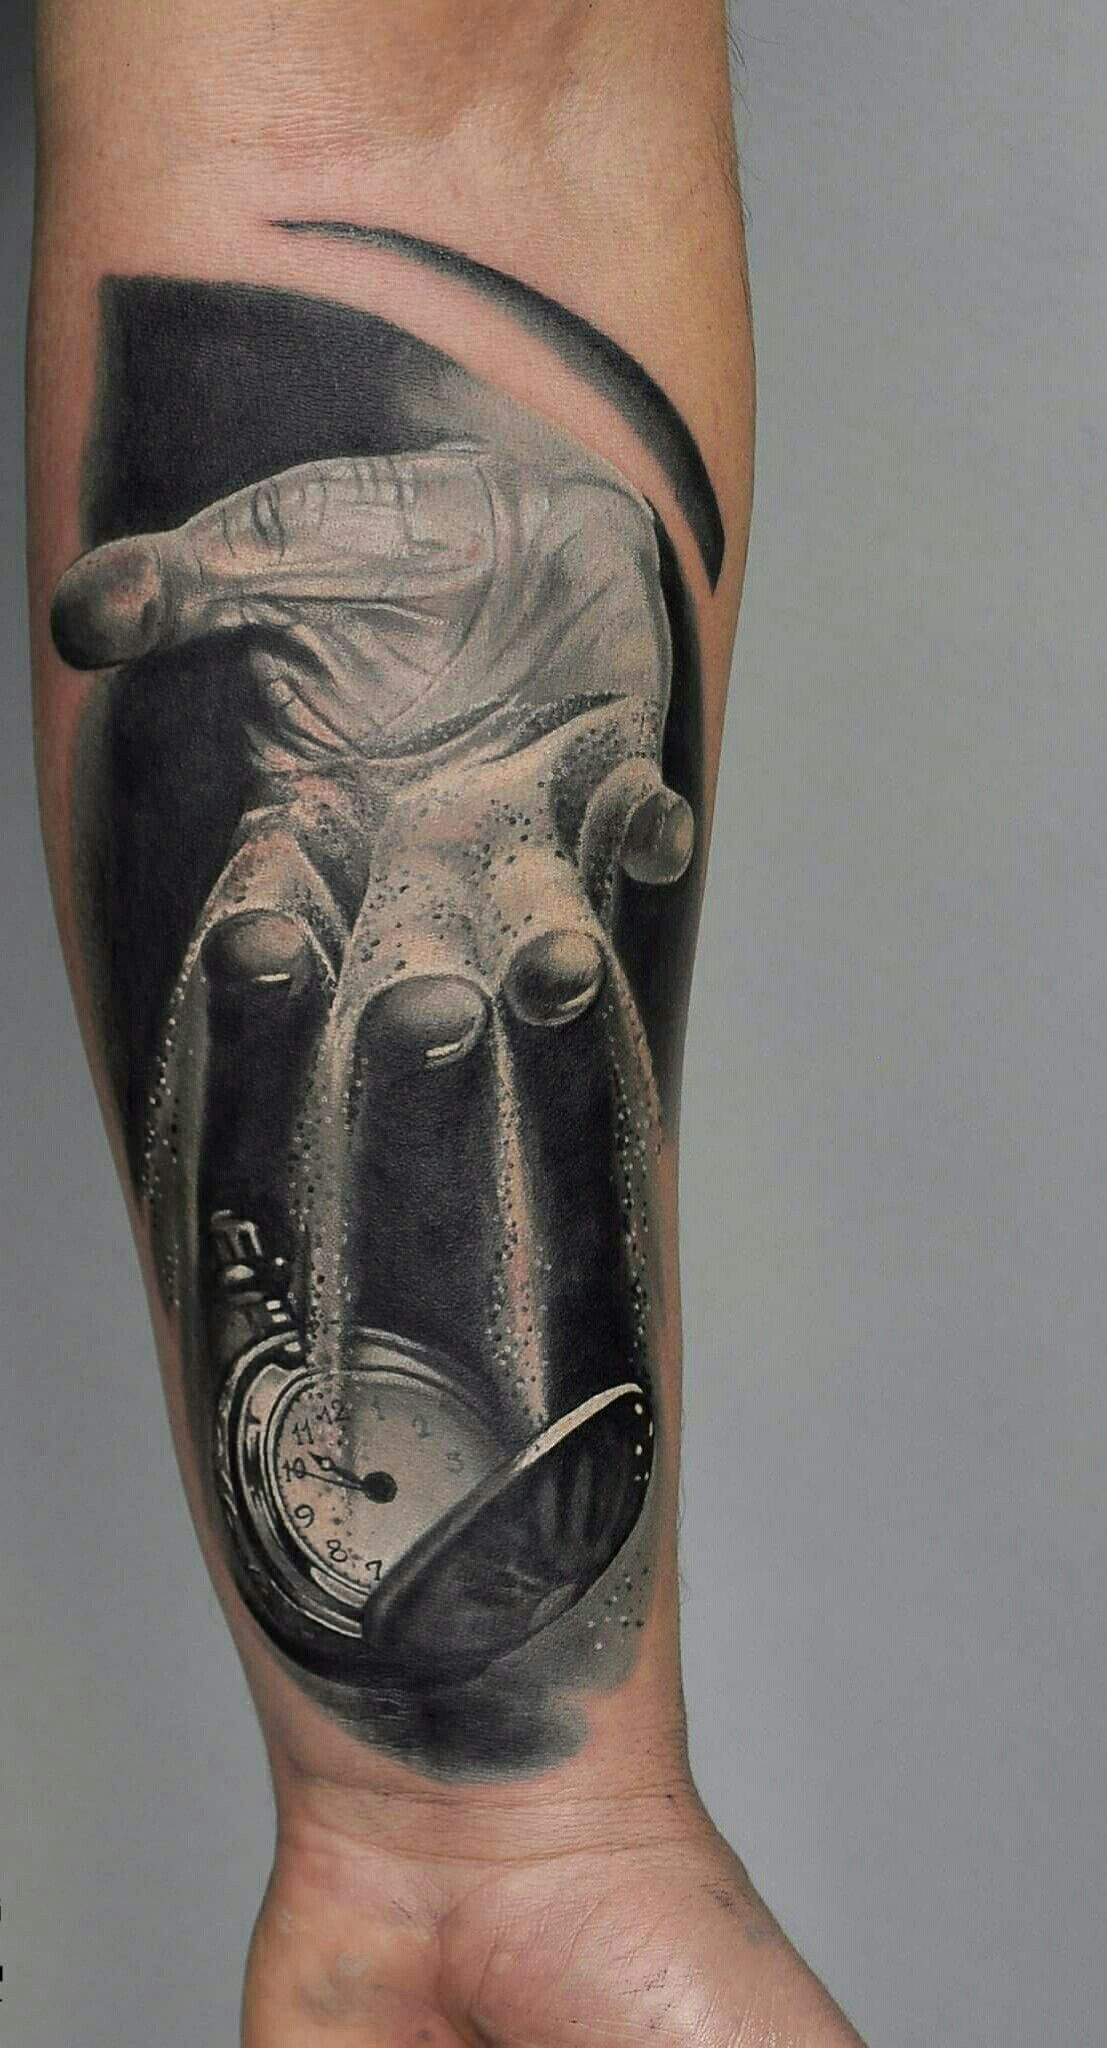 75 black and white tattoos for men masculine ink designs - 75 Black And White Tattoos For Men Masculine Ink Designs